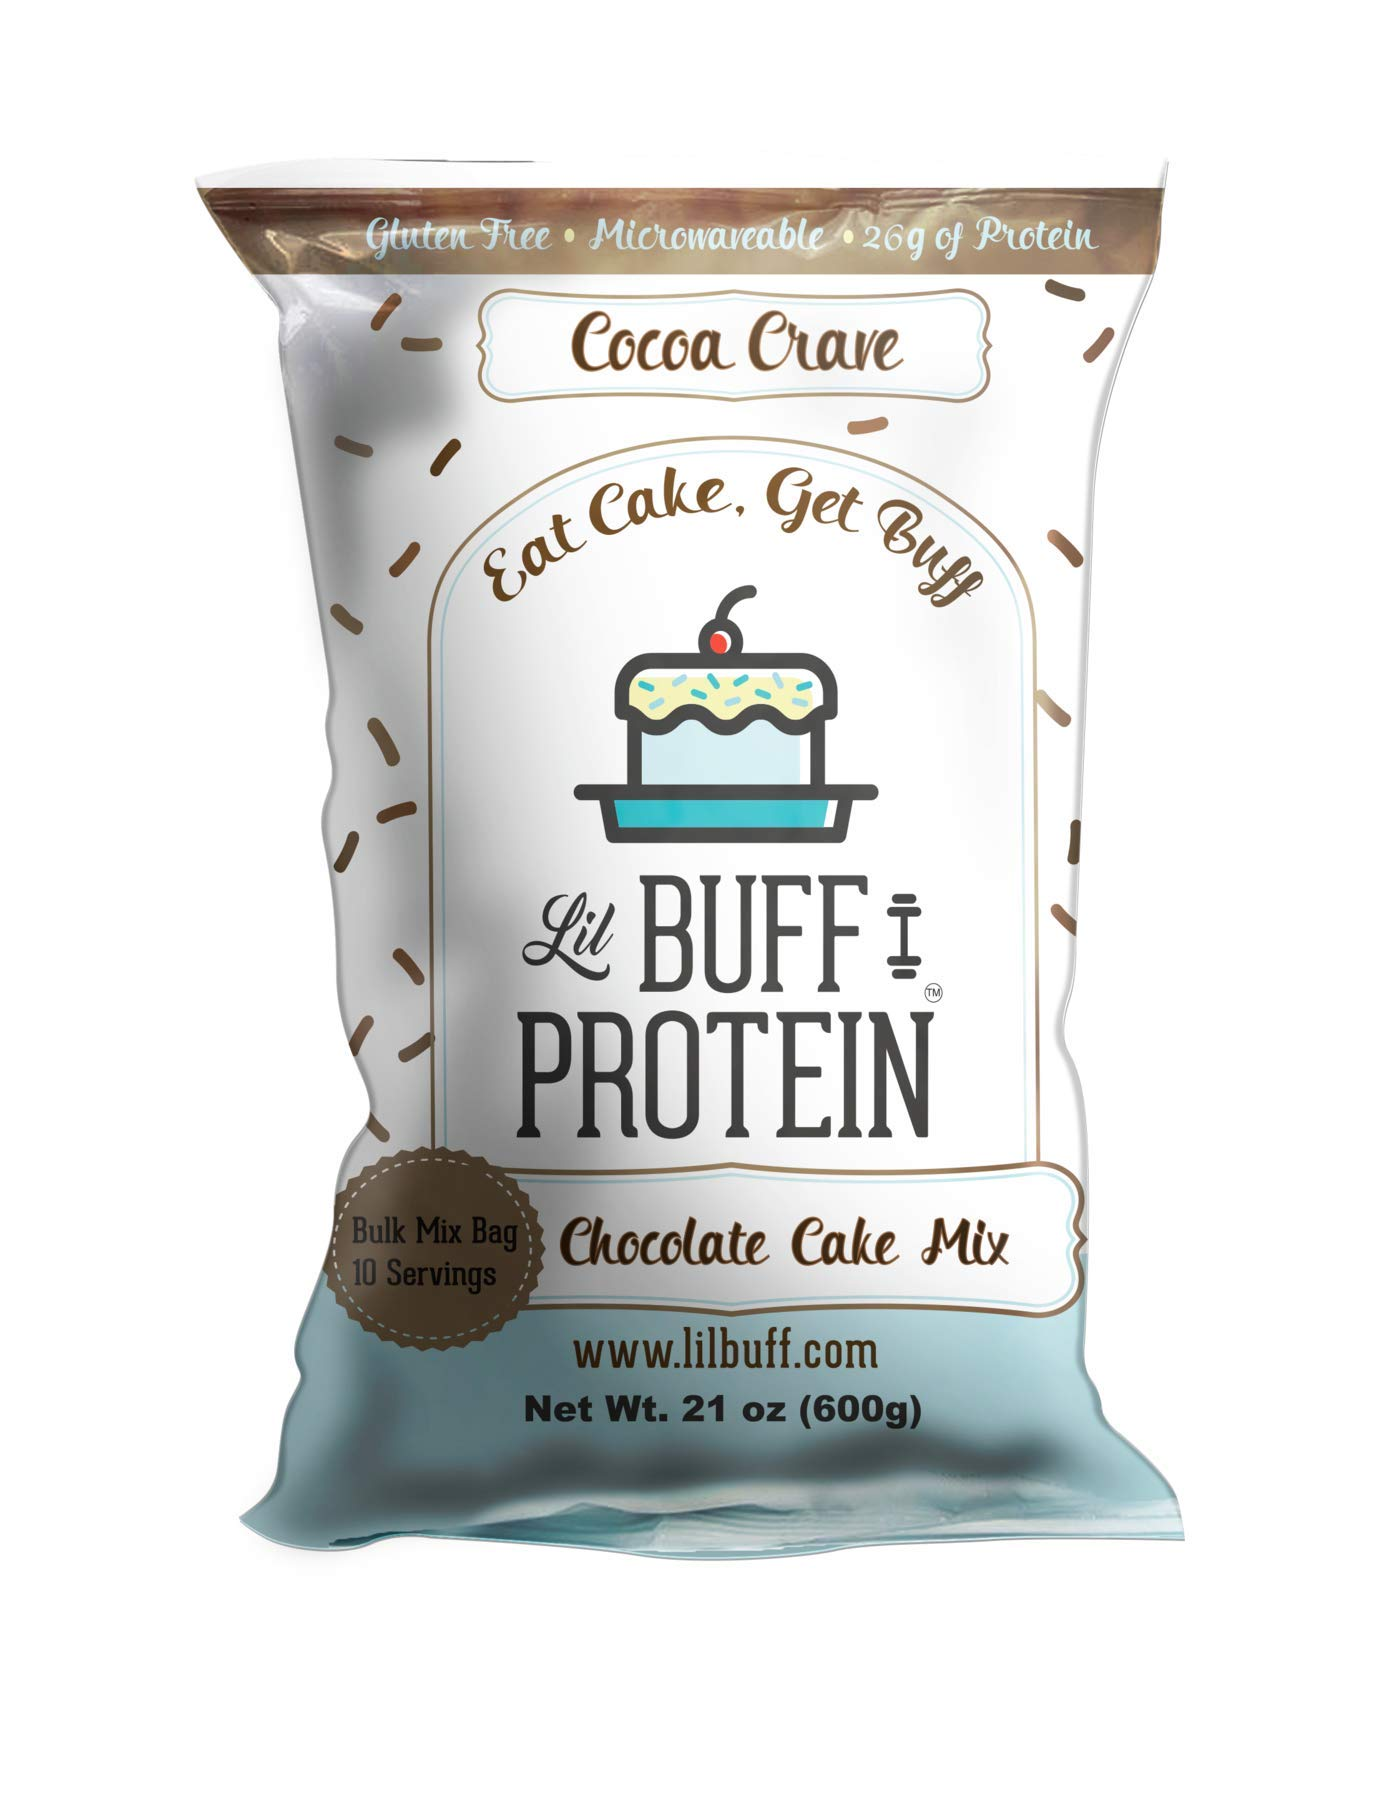 Lil Buff Protein | High Protein Cake Mix | Gluten Free, Microwaveable & 26g of Protein (Chocolate Cake Mix, Bulk Mix 10 Servings)